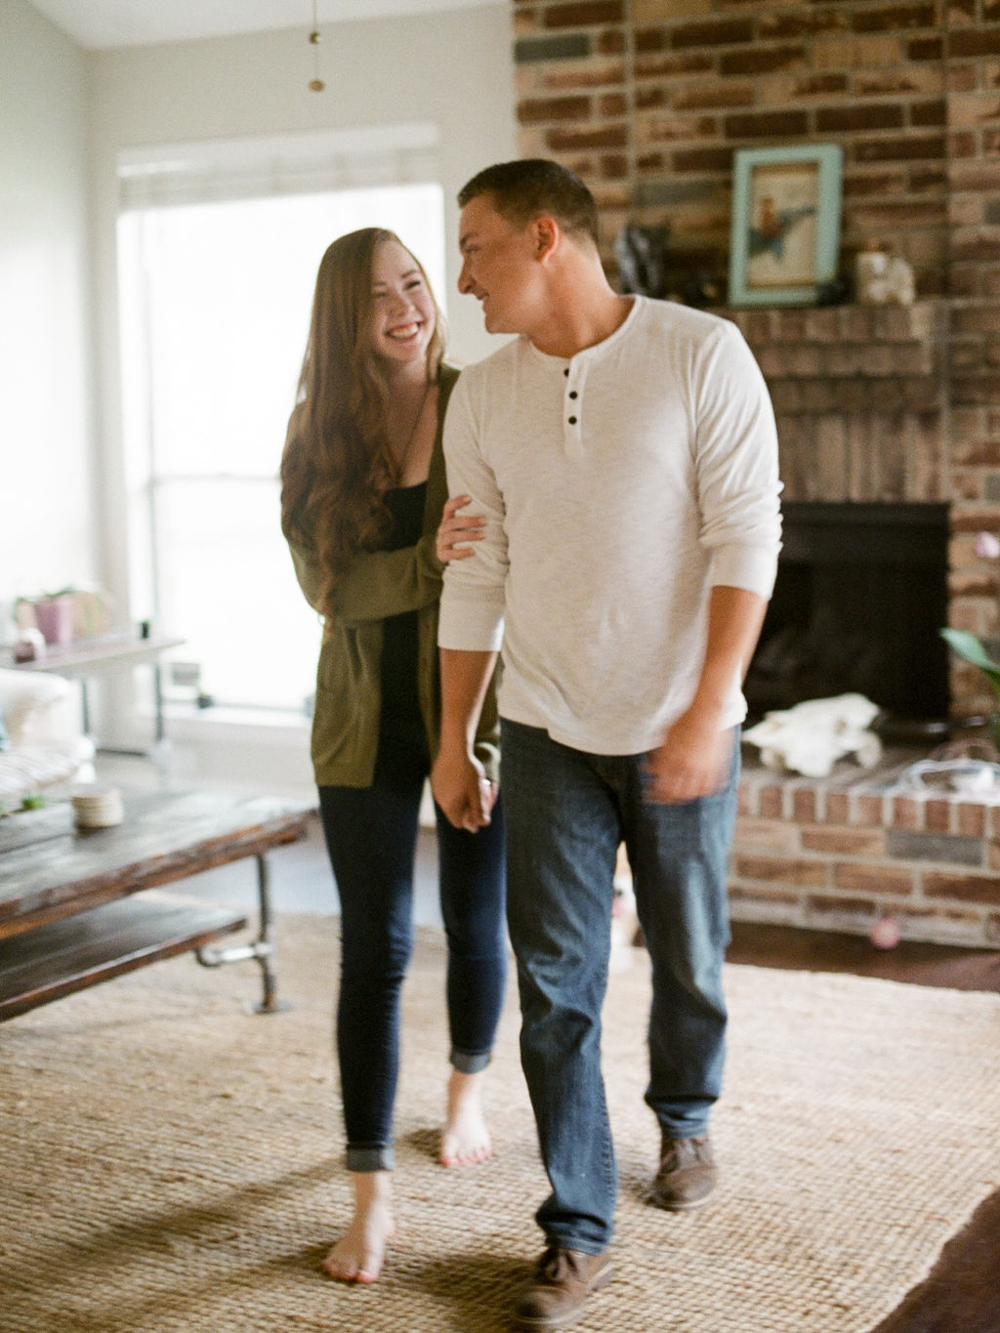 in home engagement session - film photographer - houston wedding photographer-6.jpg